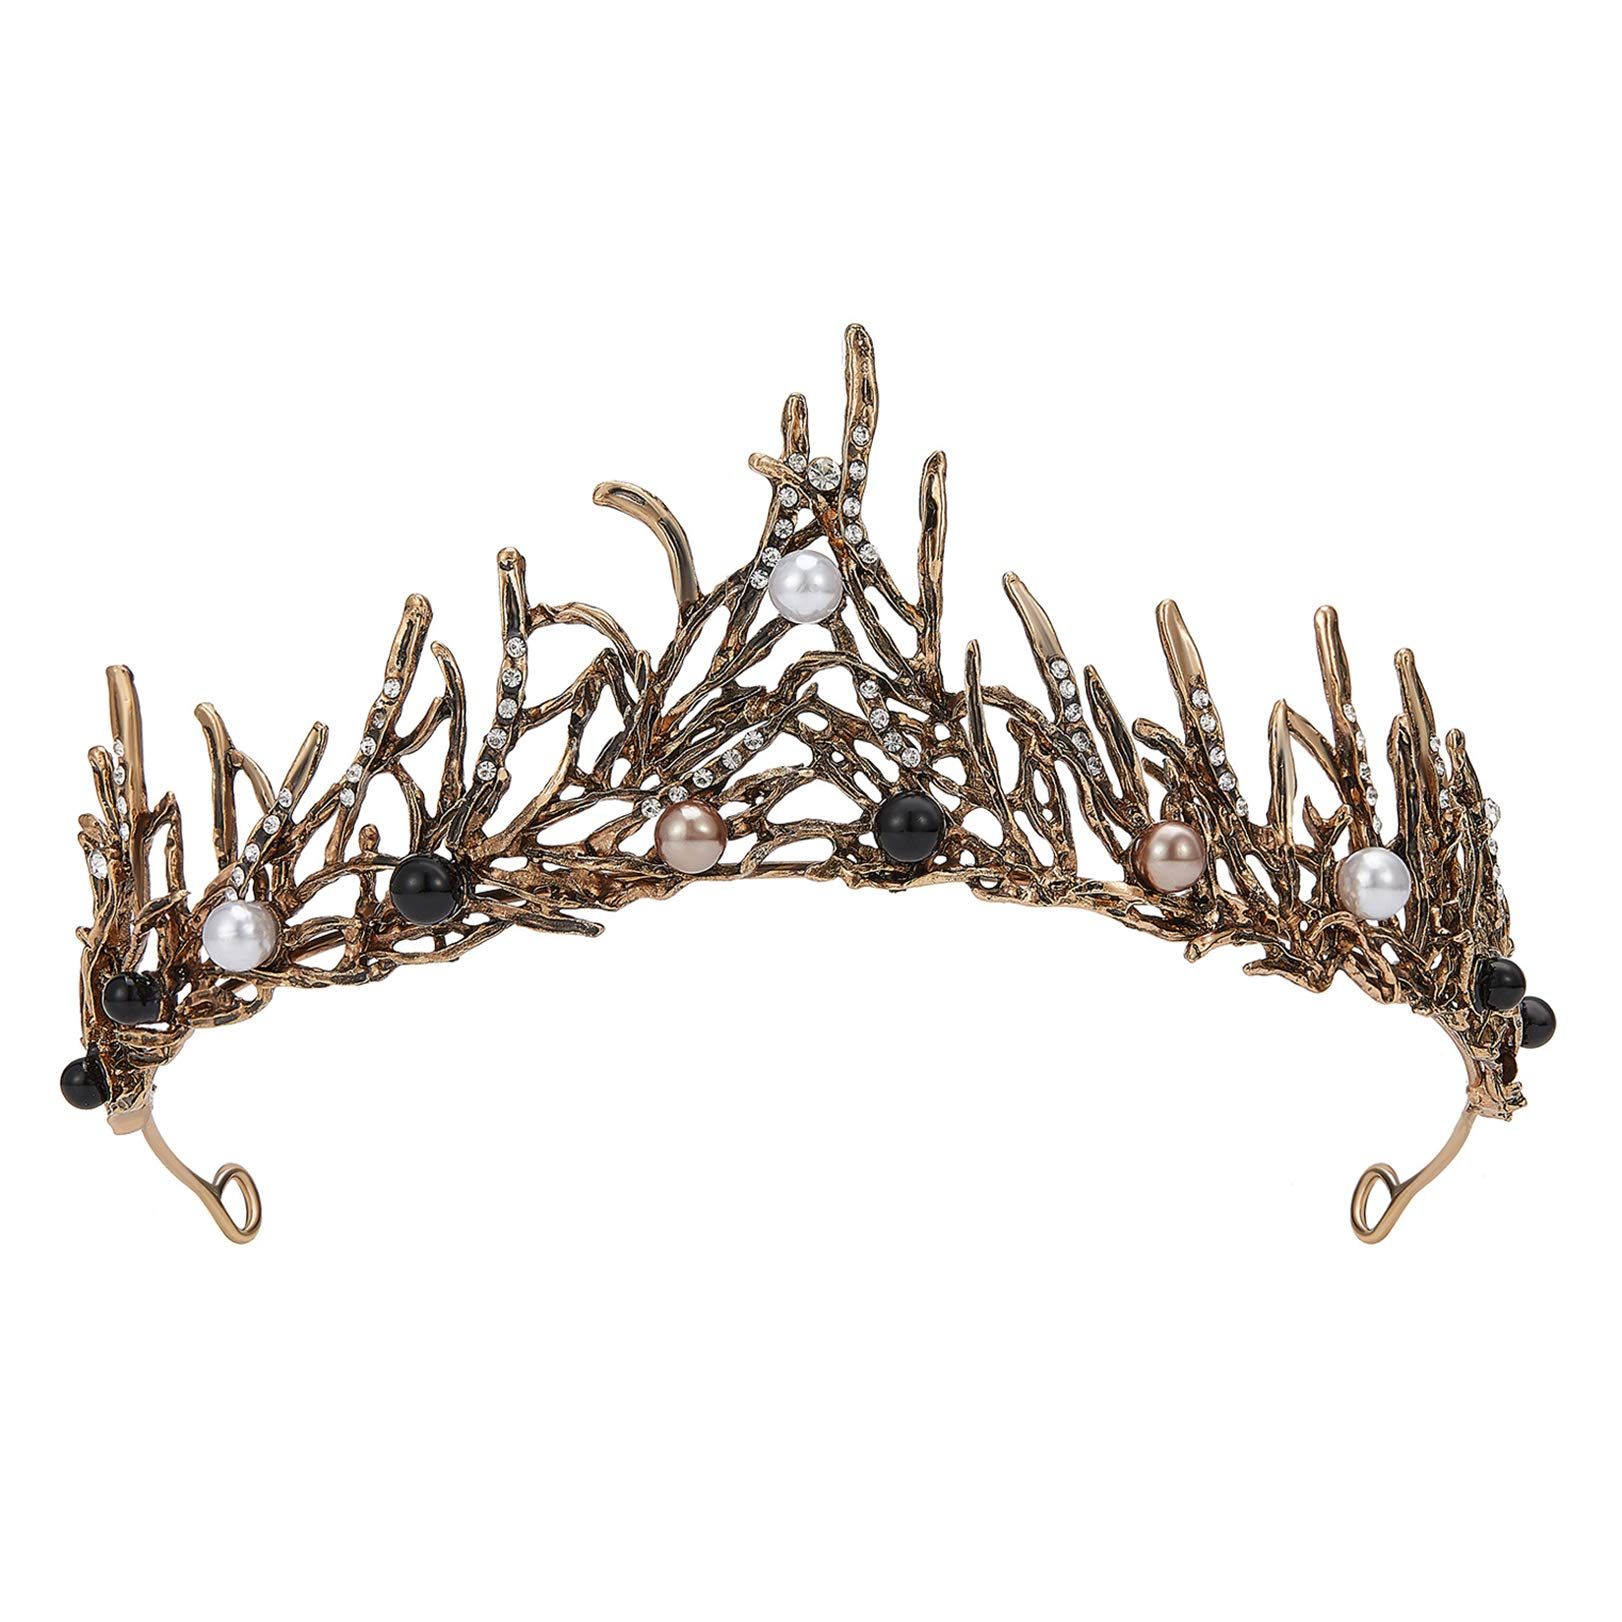 SWEETV Gothic Crown Goth Tiara, Black Tiaras and Crowns for Women Girls, Bronze Costume Headpiece for Wedding Birthday Party Cosplay Halloween with Pearl